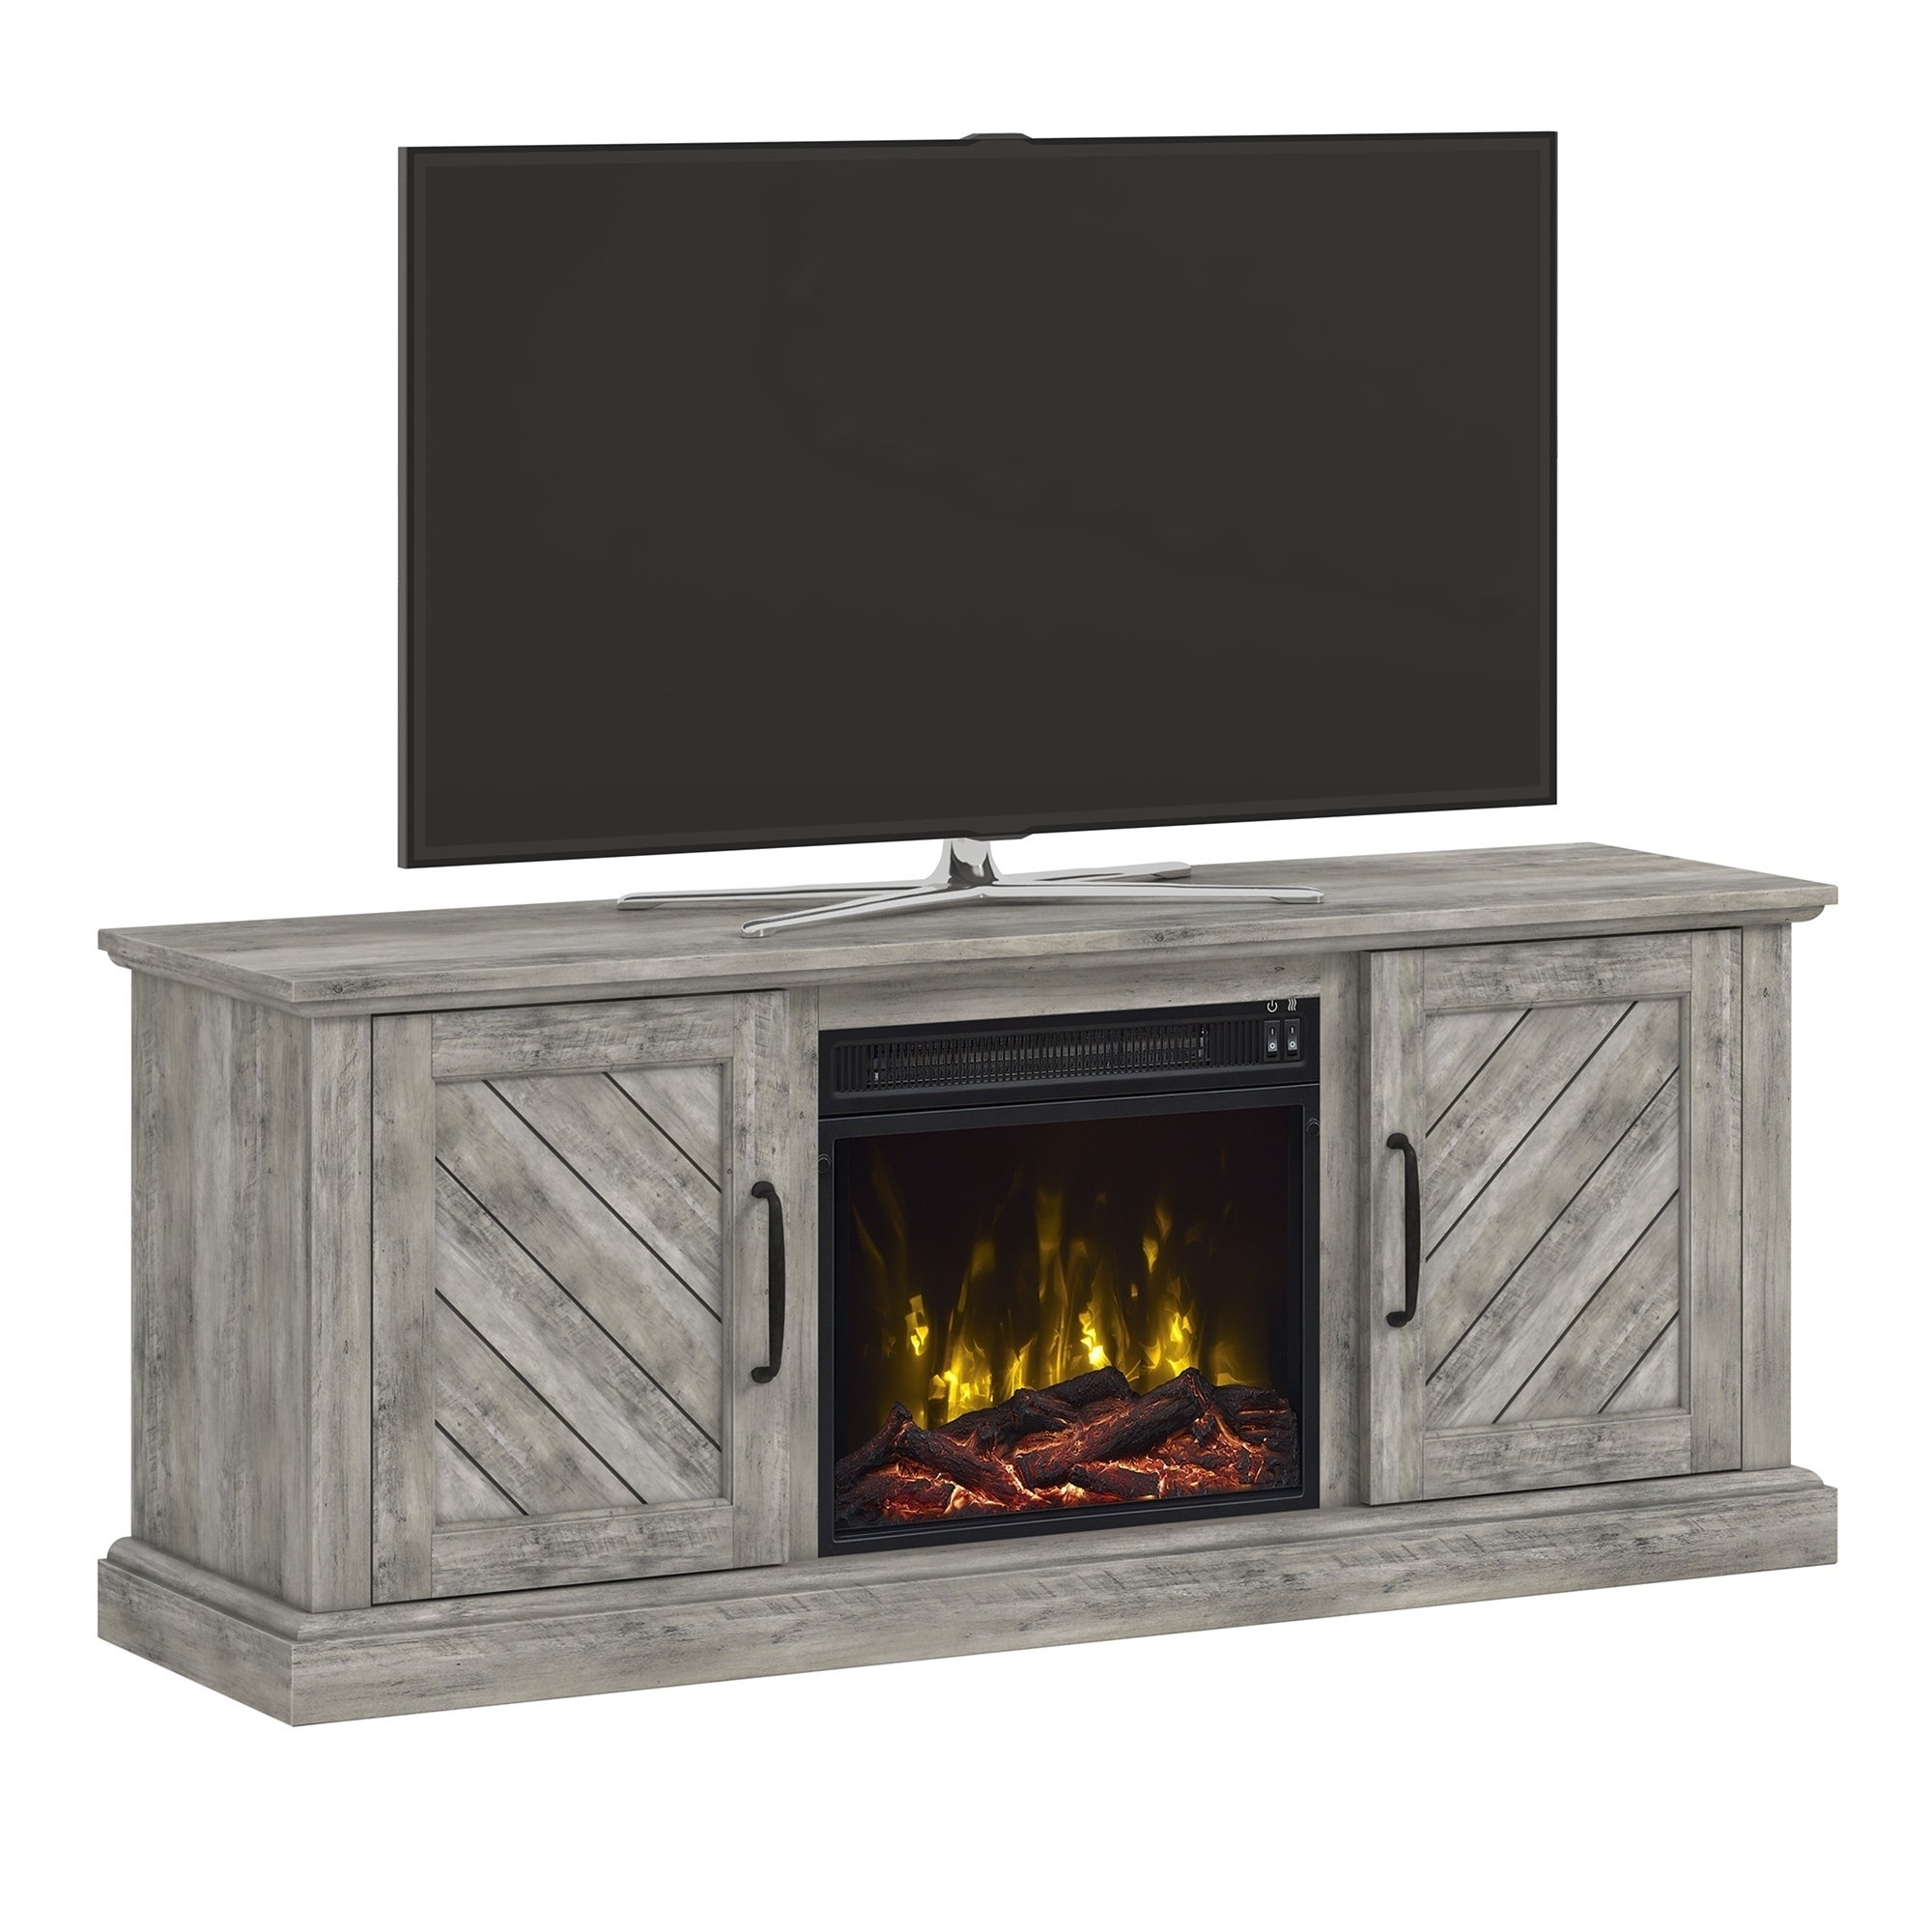 Belcrest Fireplace Tv Stand For Tvs Up To 60 Valley Pine 56 Inches In Width On Sale Overstock 21234619